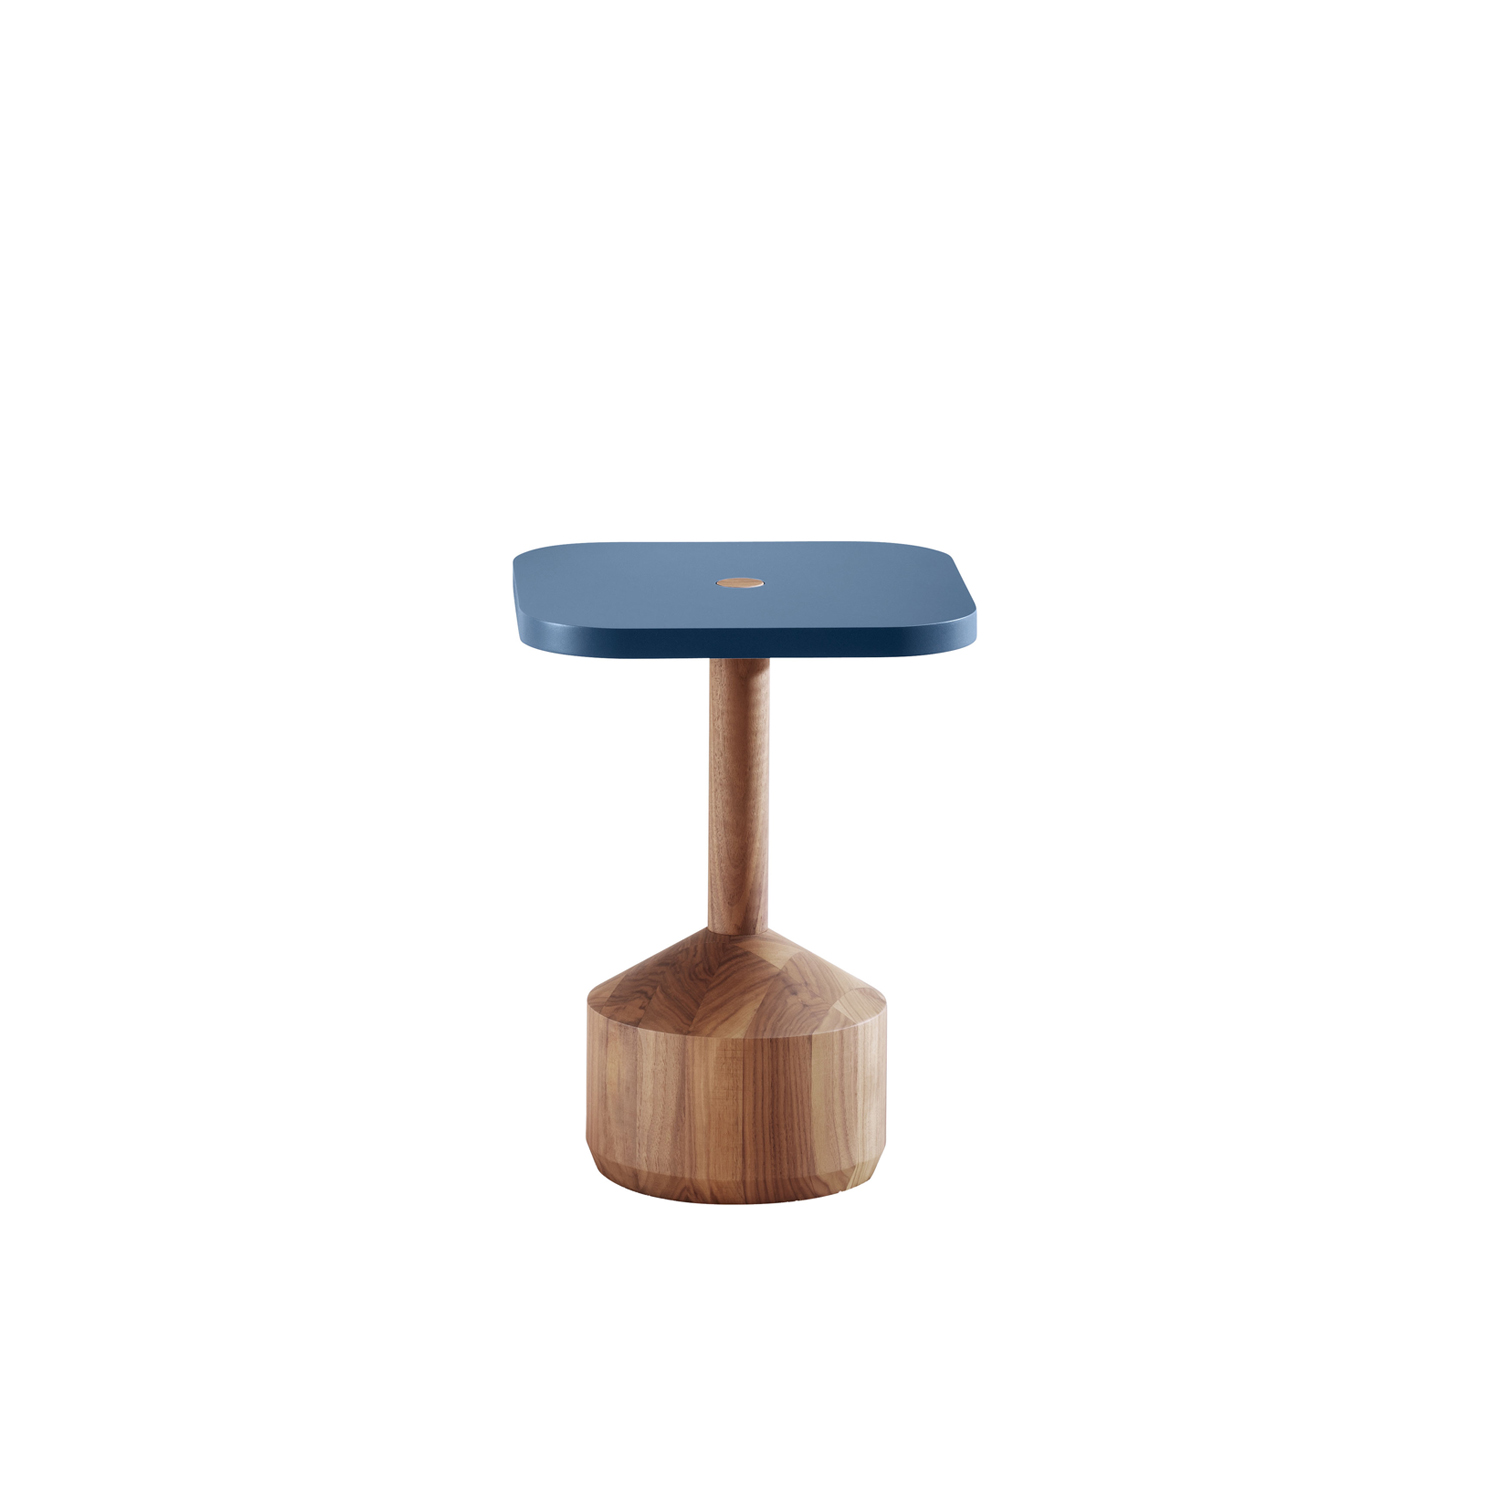 Pezzo Coffee Table - Pezzo is an exercise in geometry on the balance of solids. In this case, made in solid oak or walnut. Pezzo is both a stool and a small table.